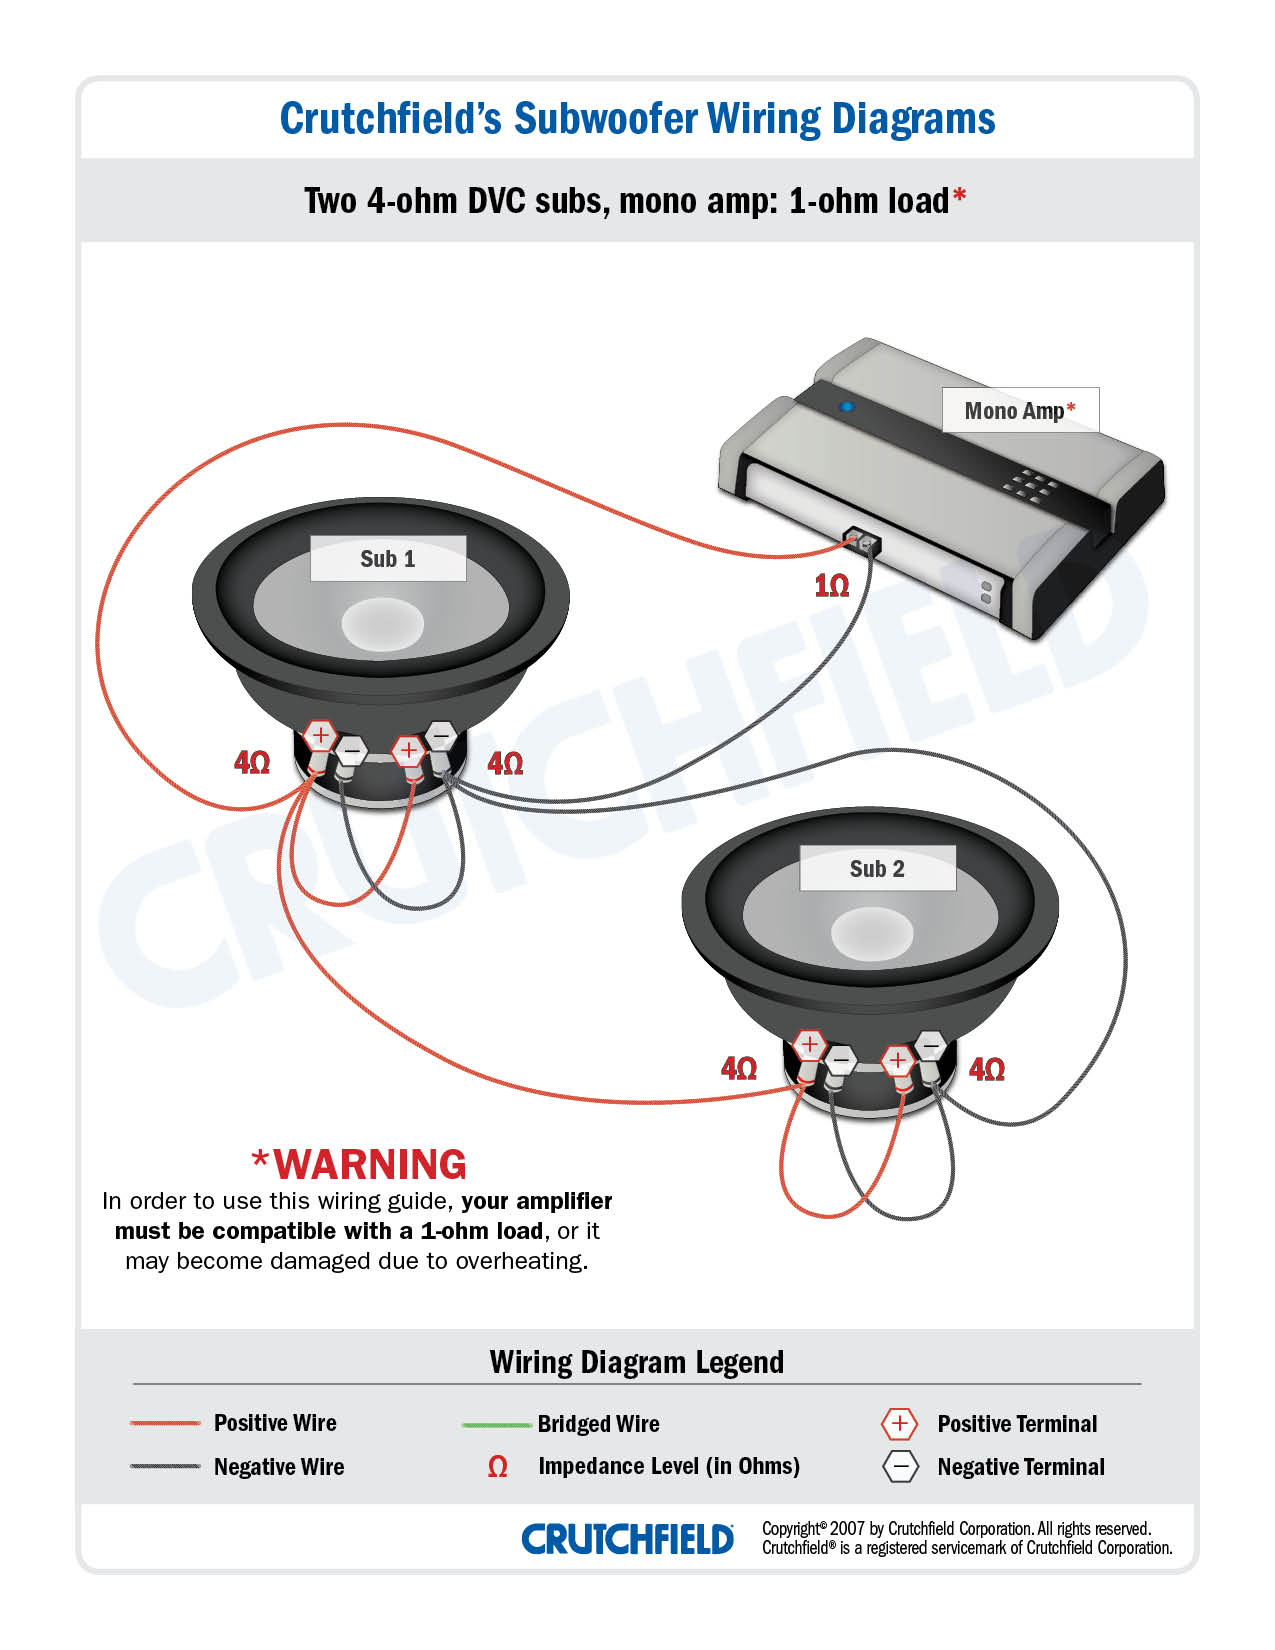 Amplifier Wiring Diagrams: How To Add An Amplifier To Your Car Audio - Car Amplifier Wiring Diagram Installation